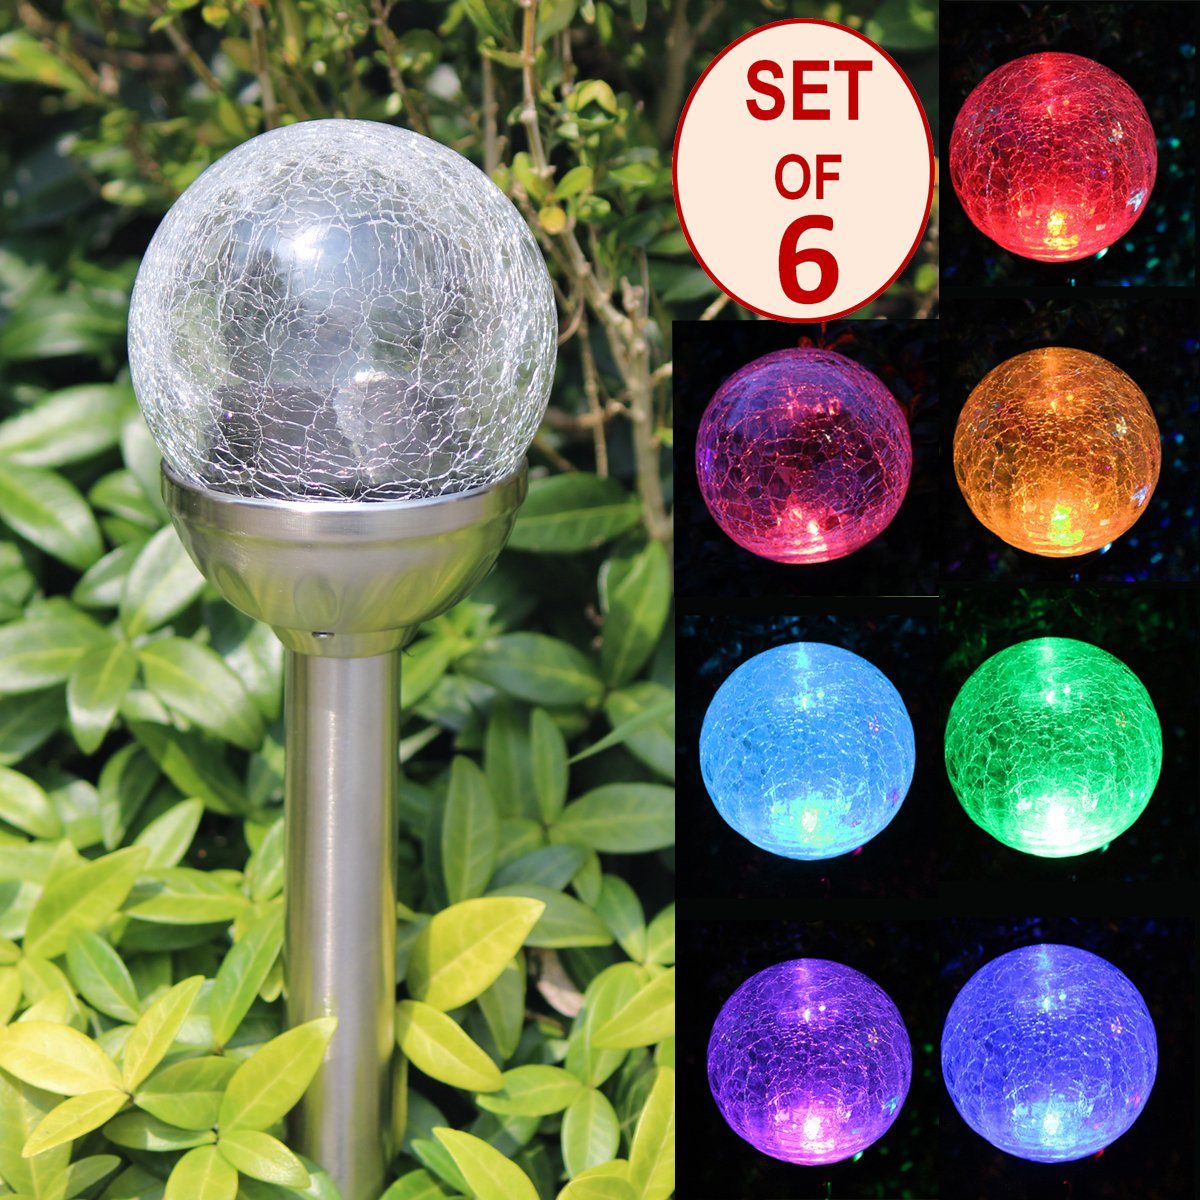 SET OF 6 Crackle Glass Globe Color-Changing LED & White LED Solar Path Lights by SOLAscape